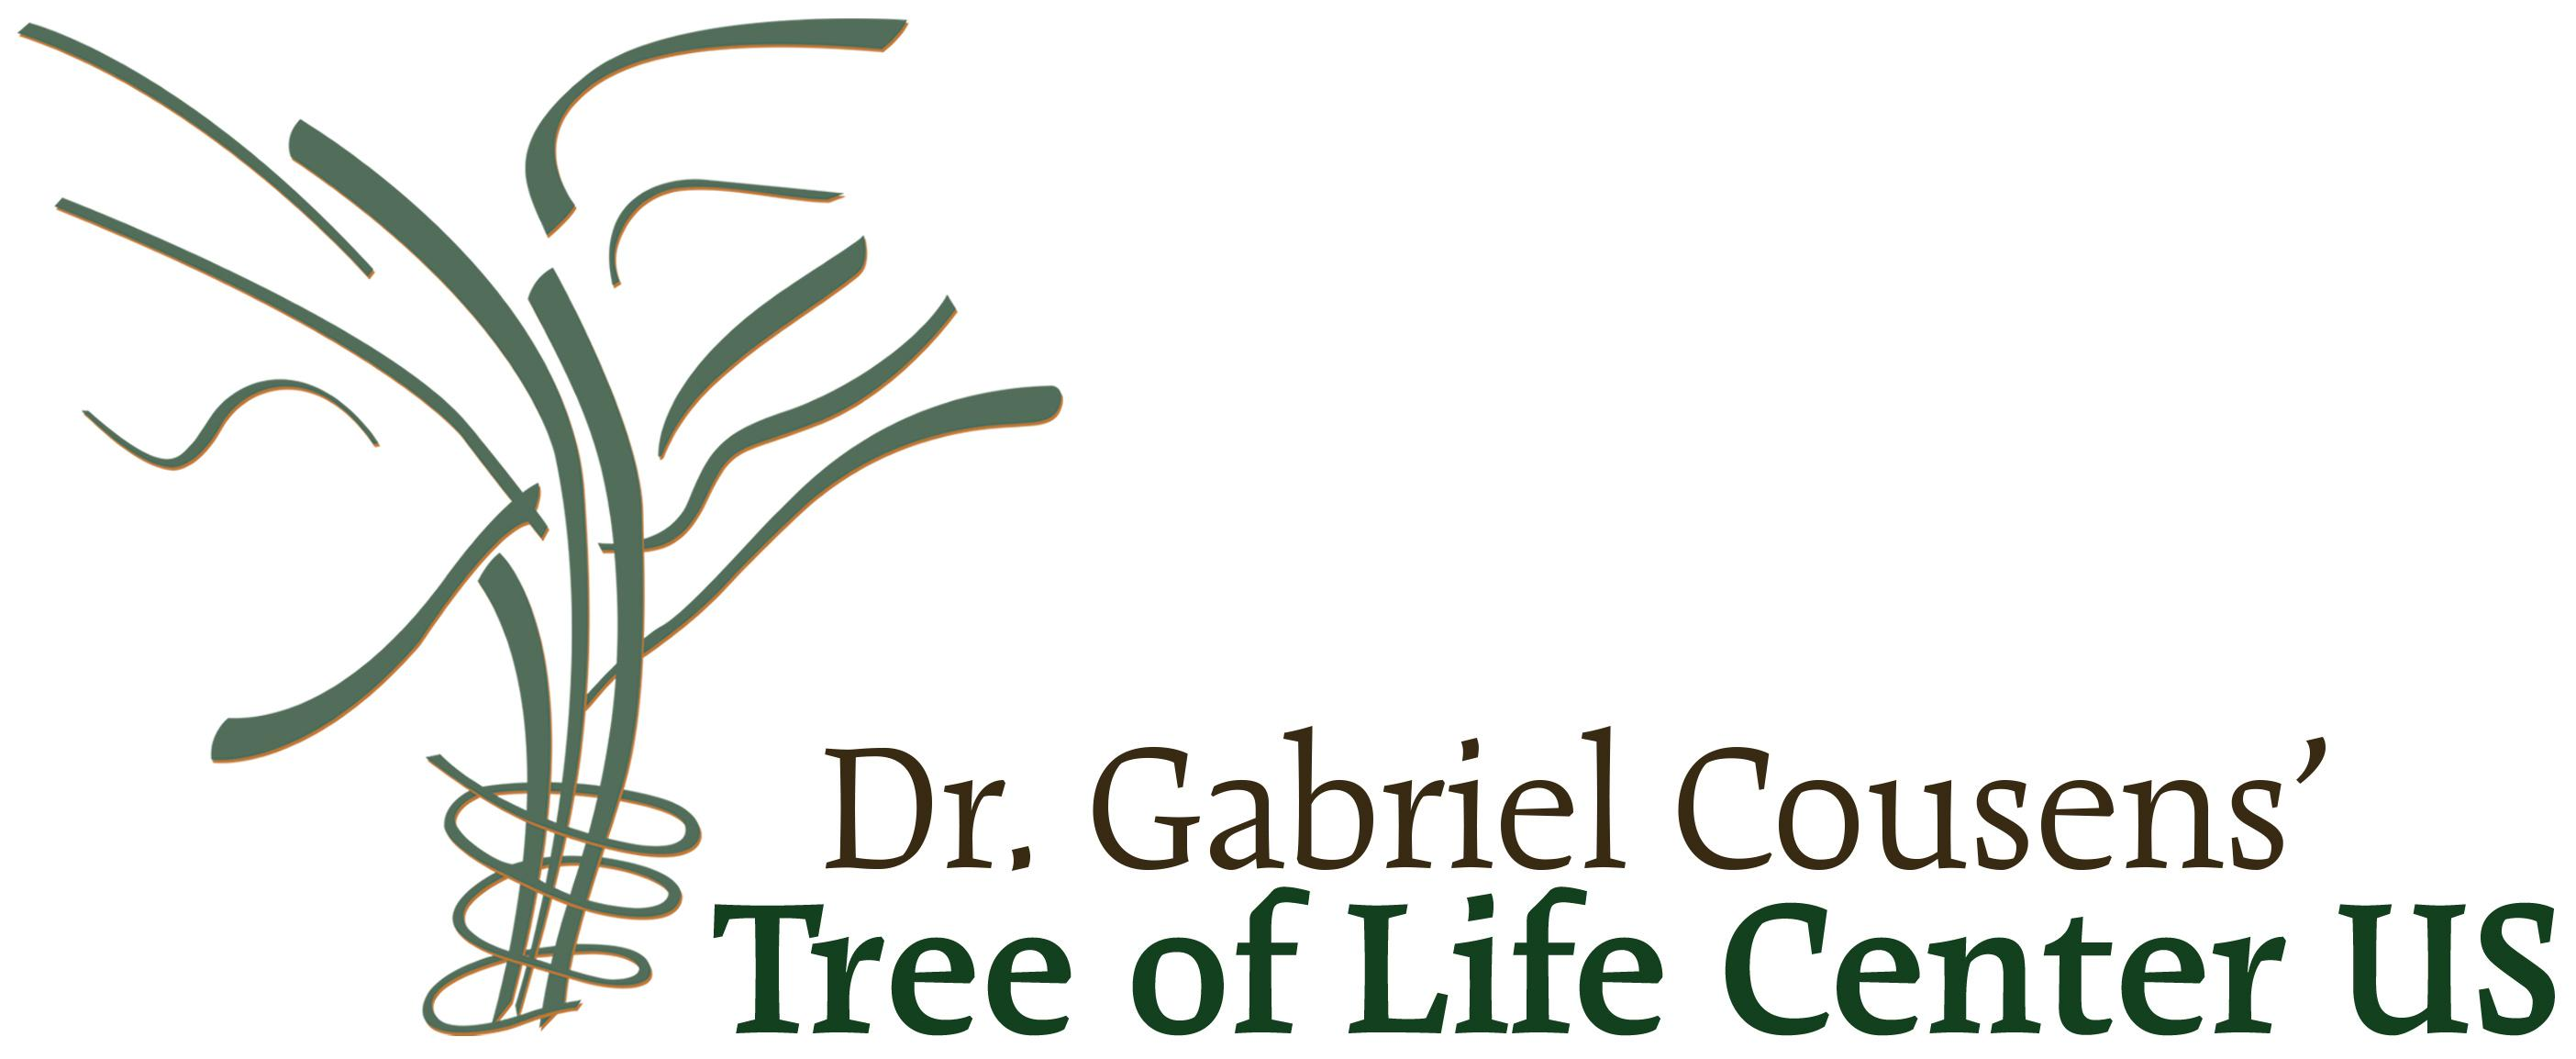 Tree of Life Rejuvenation Center logo